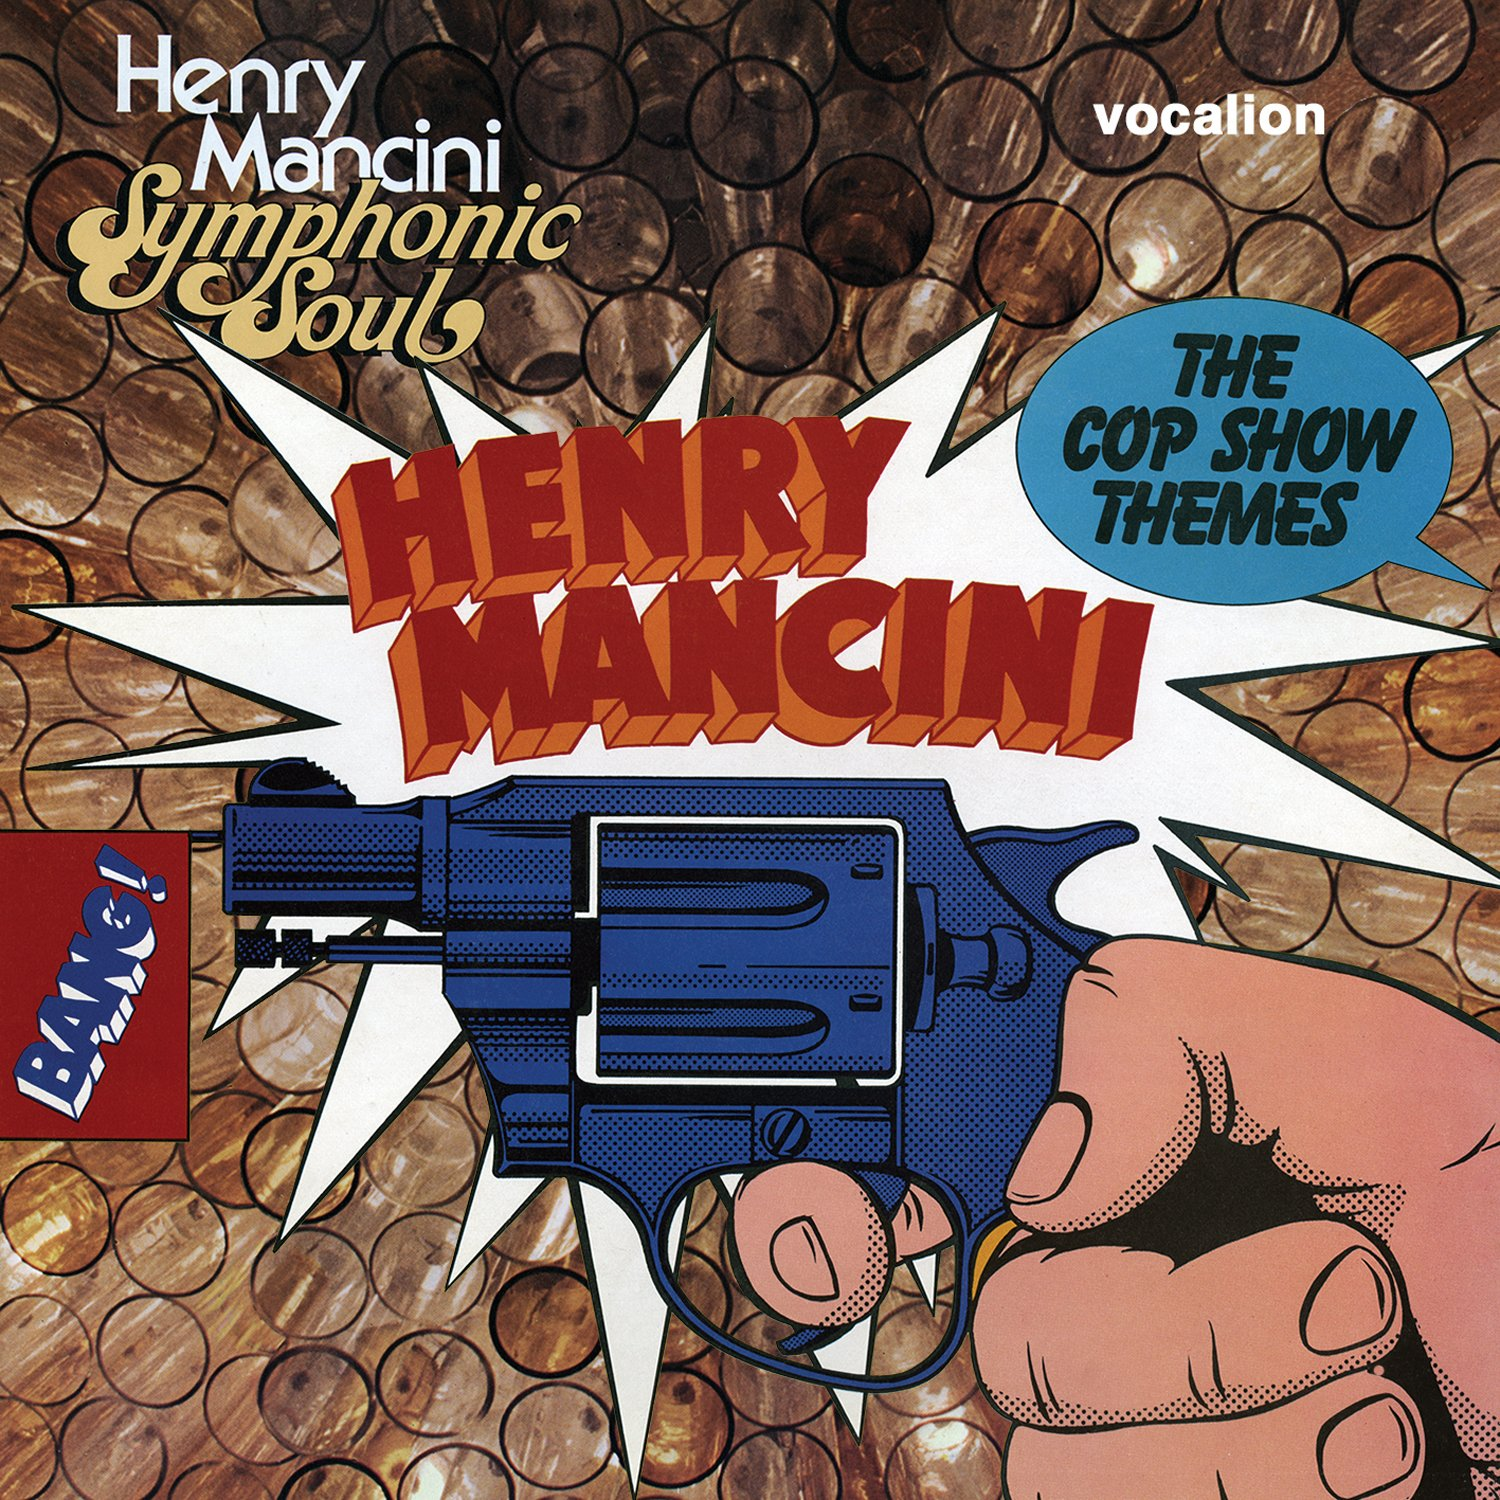 amazon the cop show themes symphonic henry mancini his orch